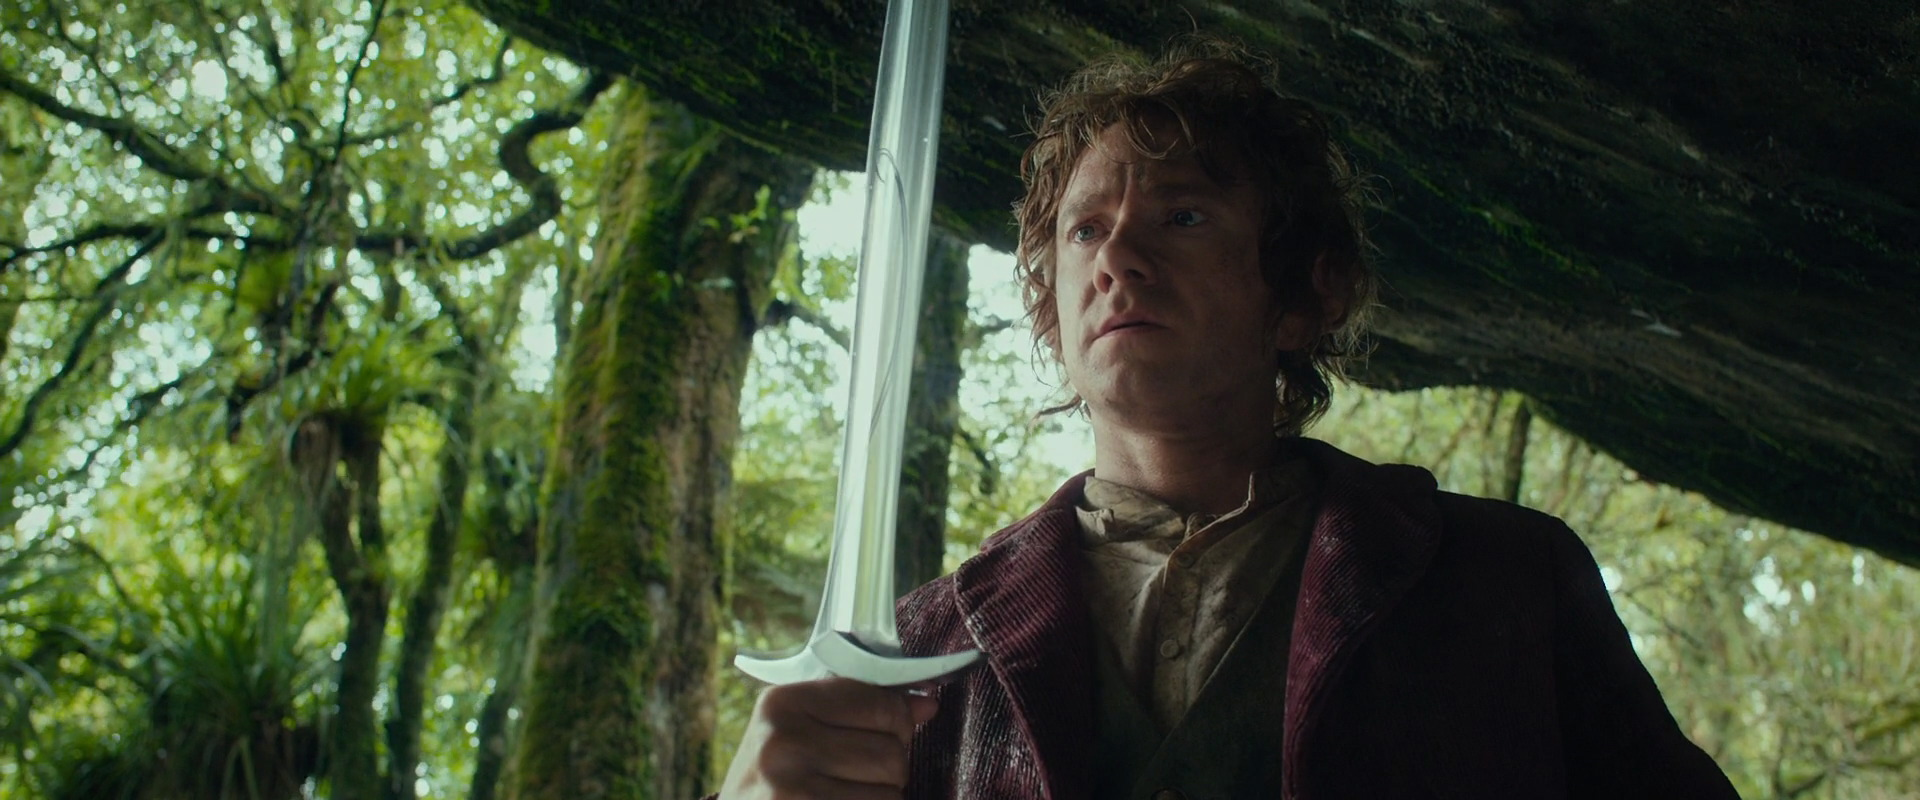 A new Lord of the Rings book is out this year